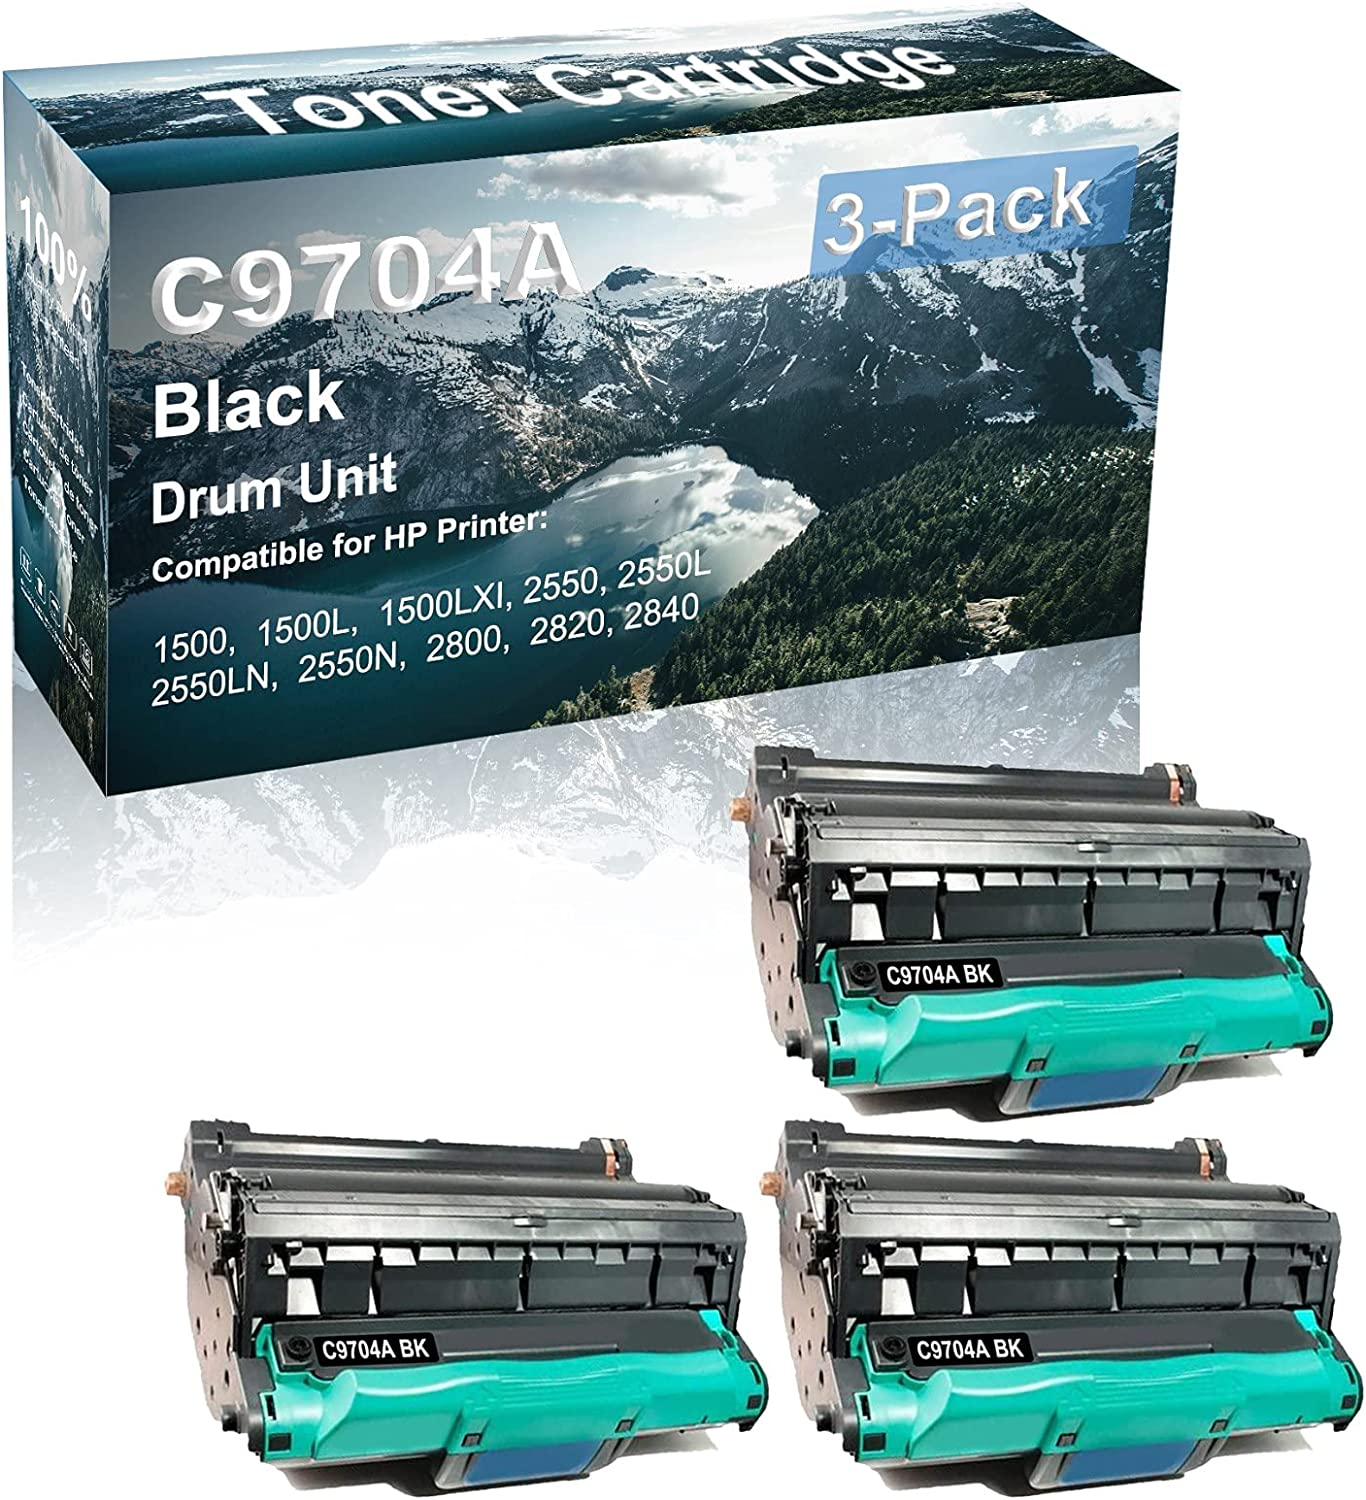 3-Pack Compatible C9704A Drum Kit use for HP 1500 1500L 1500LXI Printer (Black)